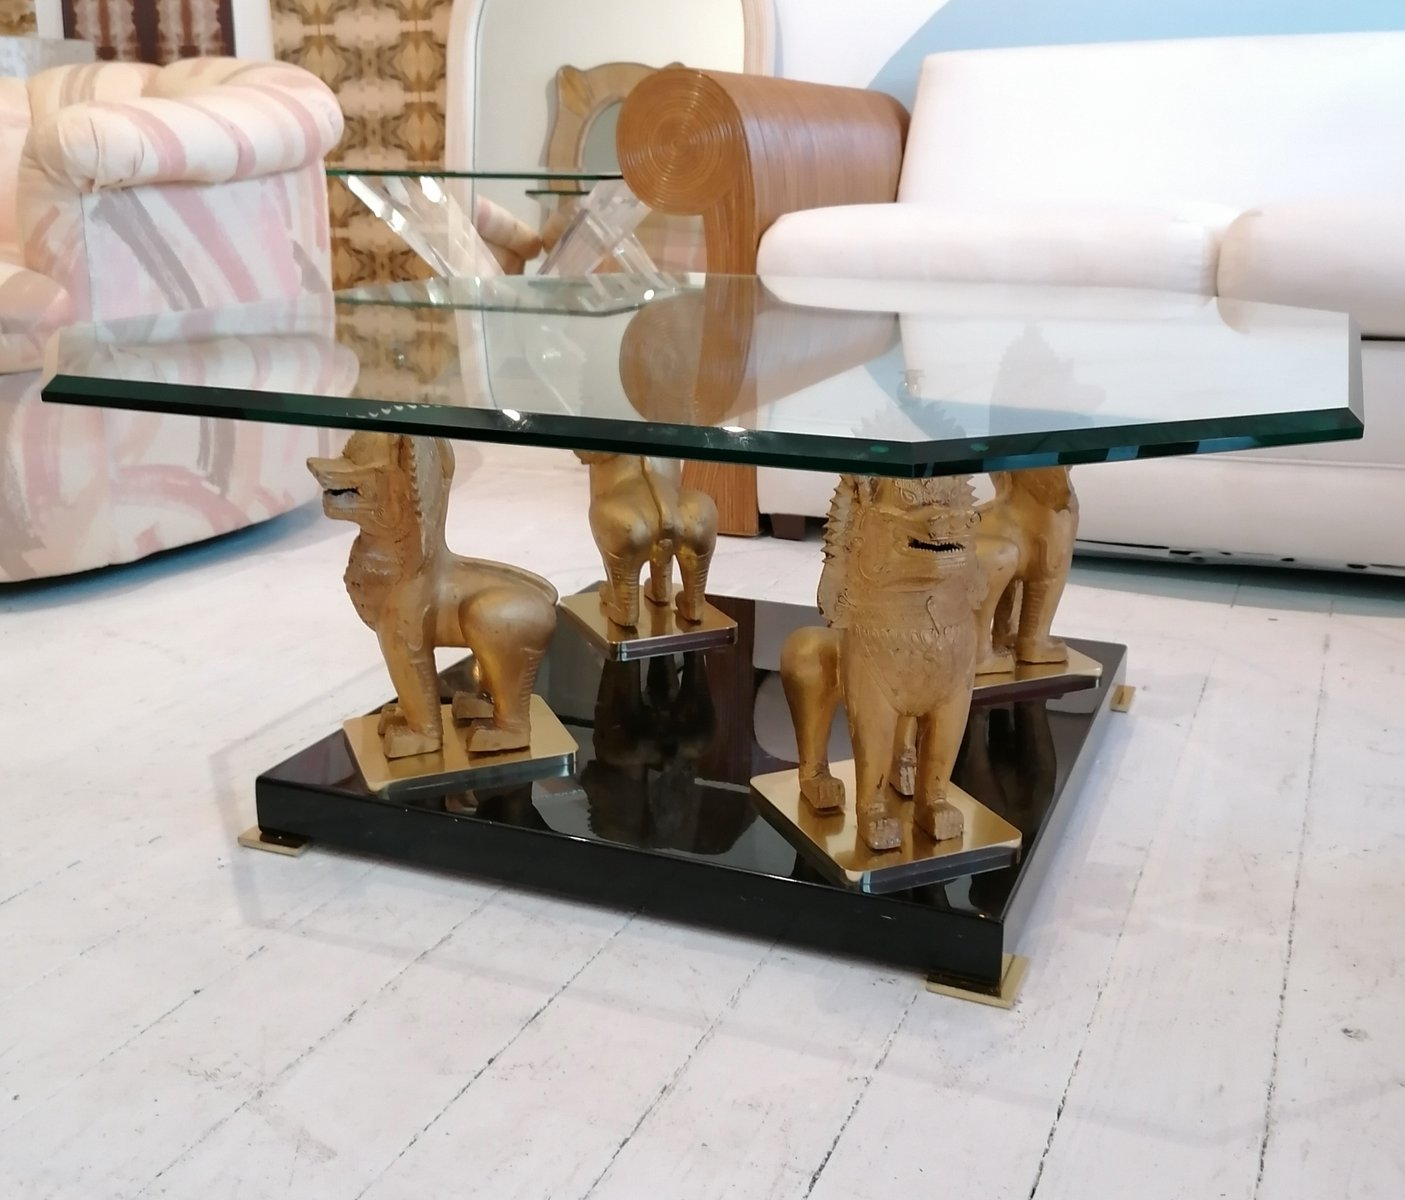 Hollywood Regency Messing Lack Glas Foo Couchtisch 1970er Bei Pamono Kaufen